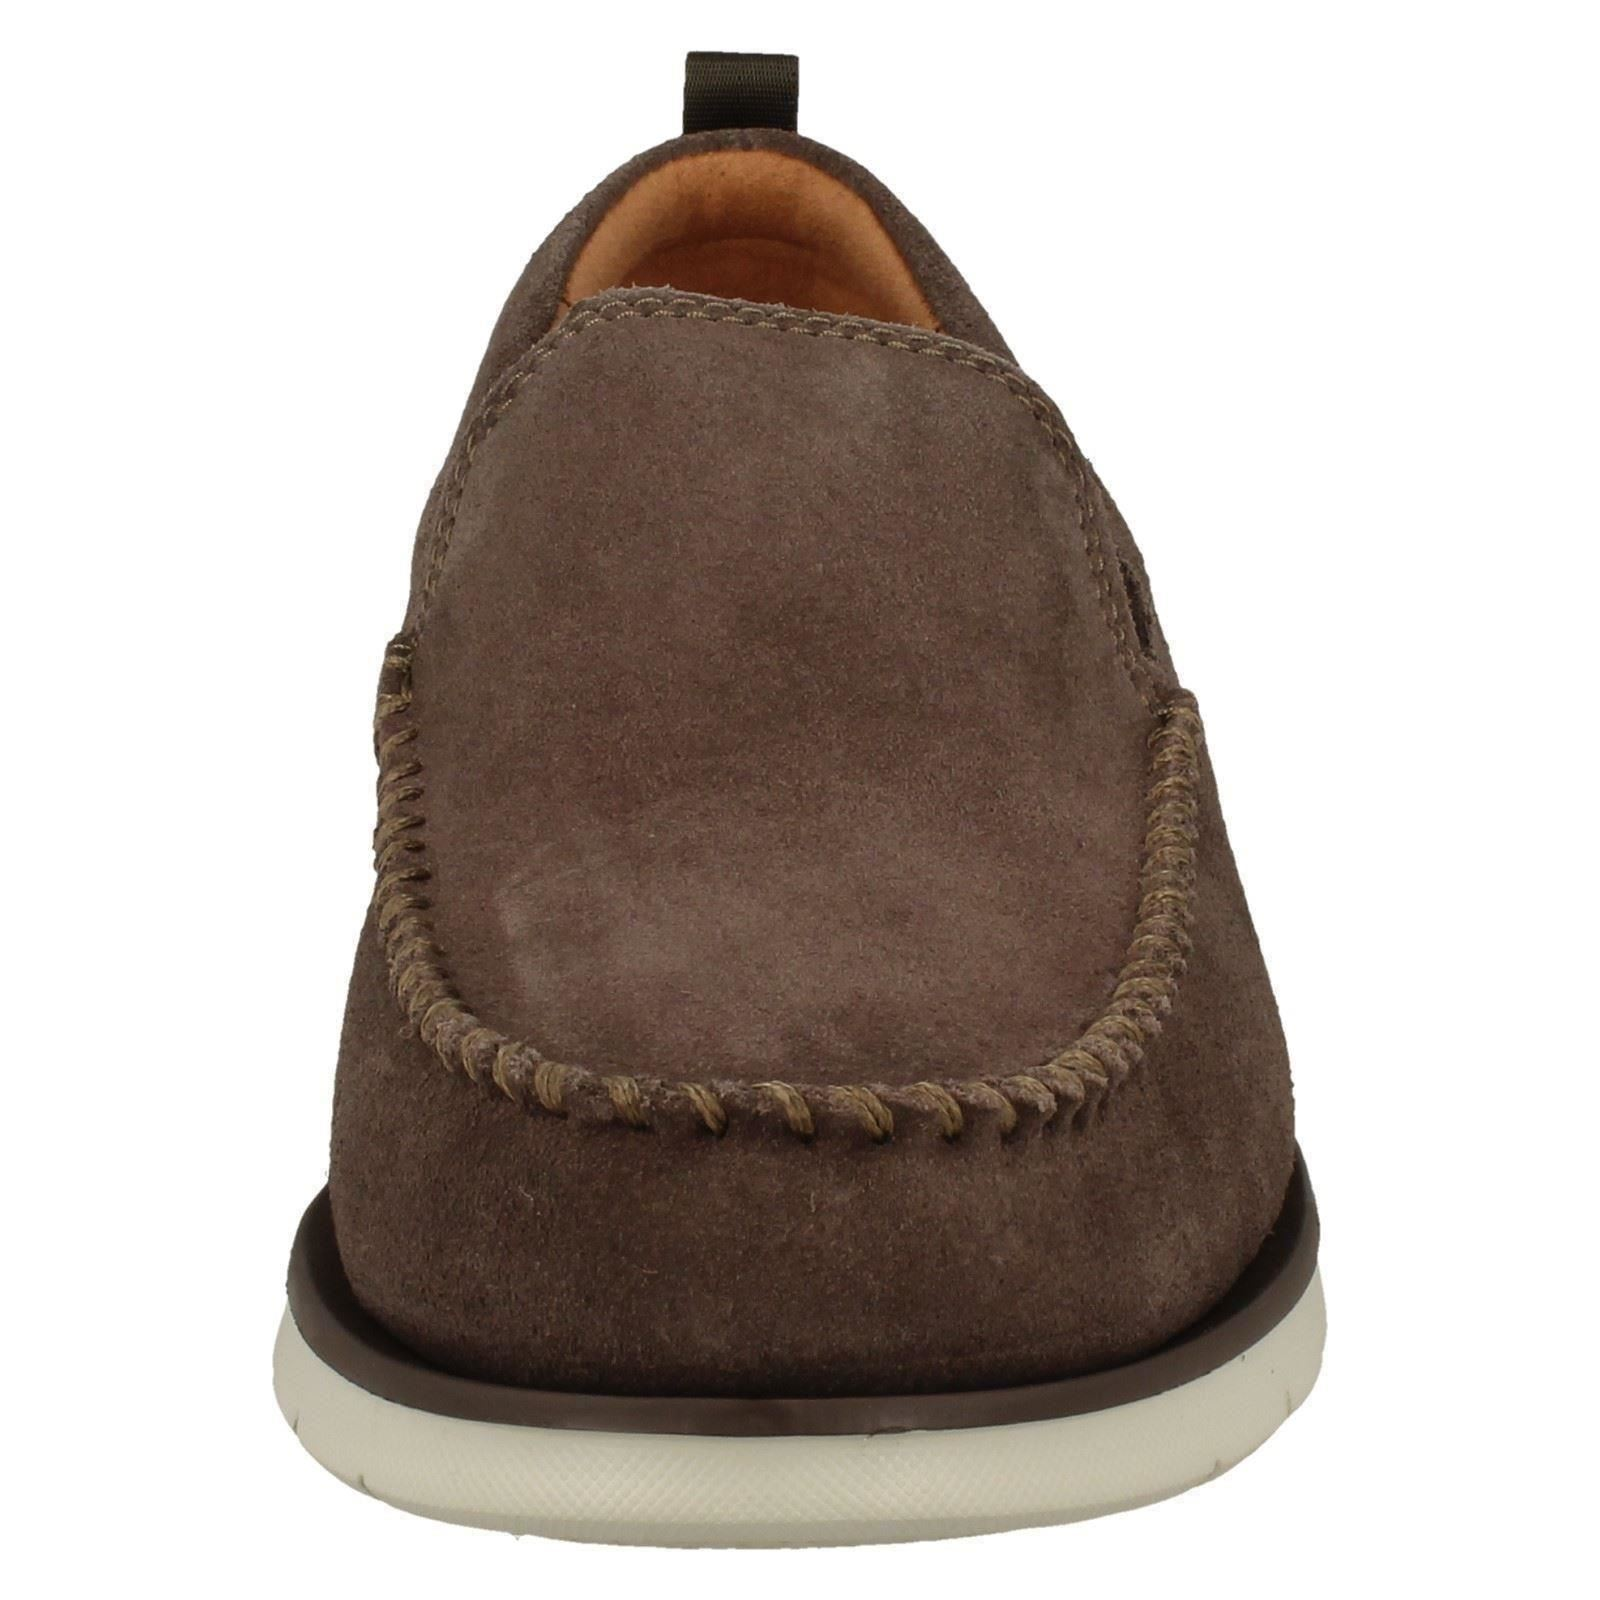 Mens Clarks Casual Slip On Suede Leather Shoes - Edgewood Step